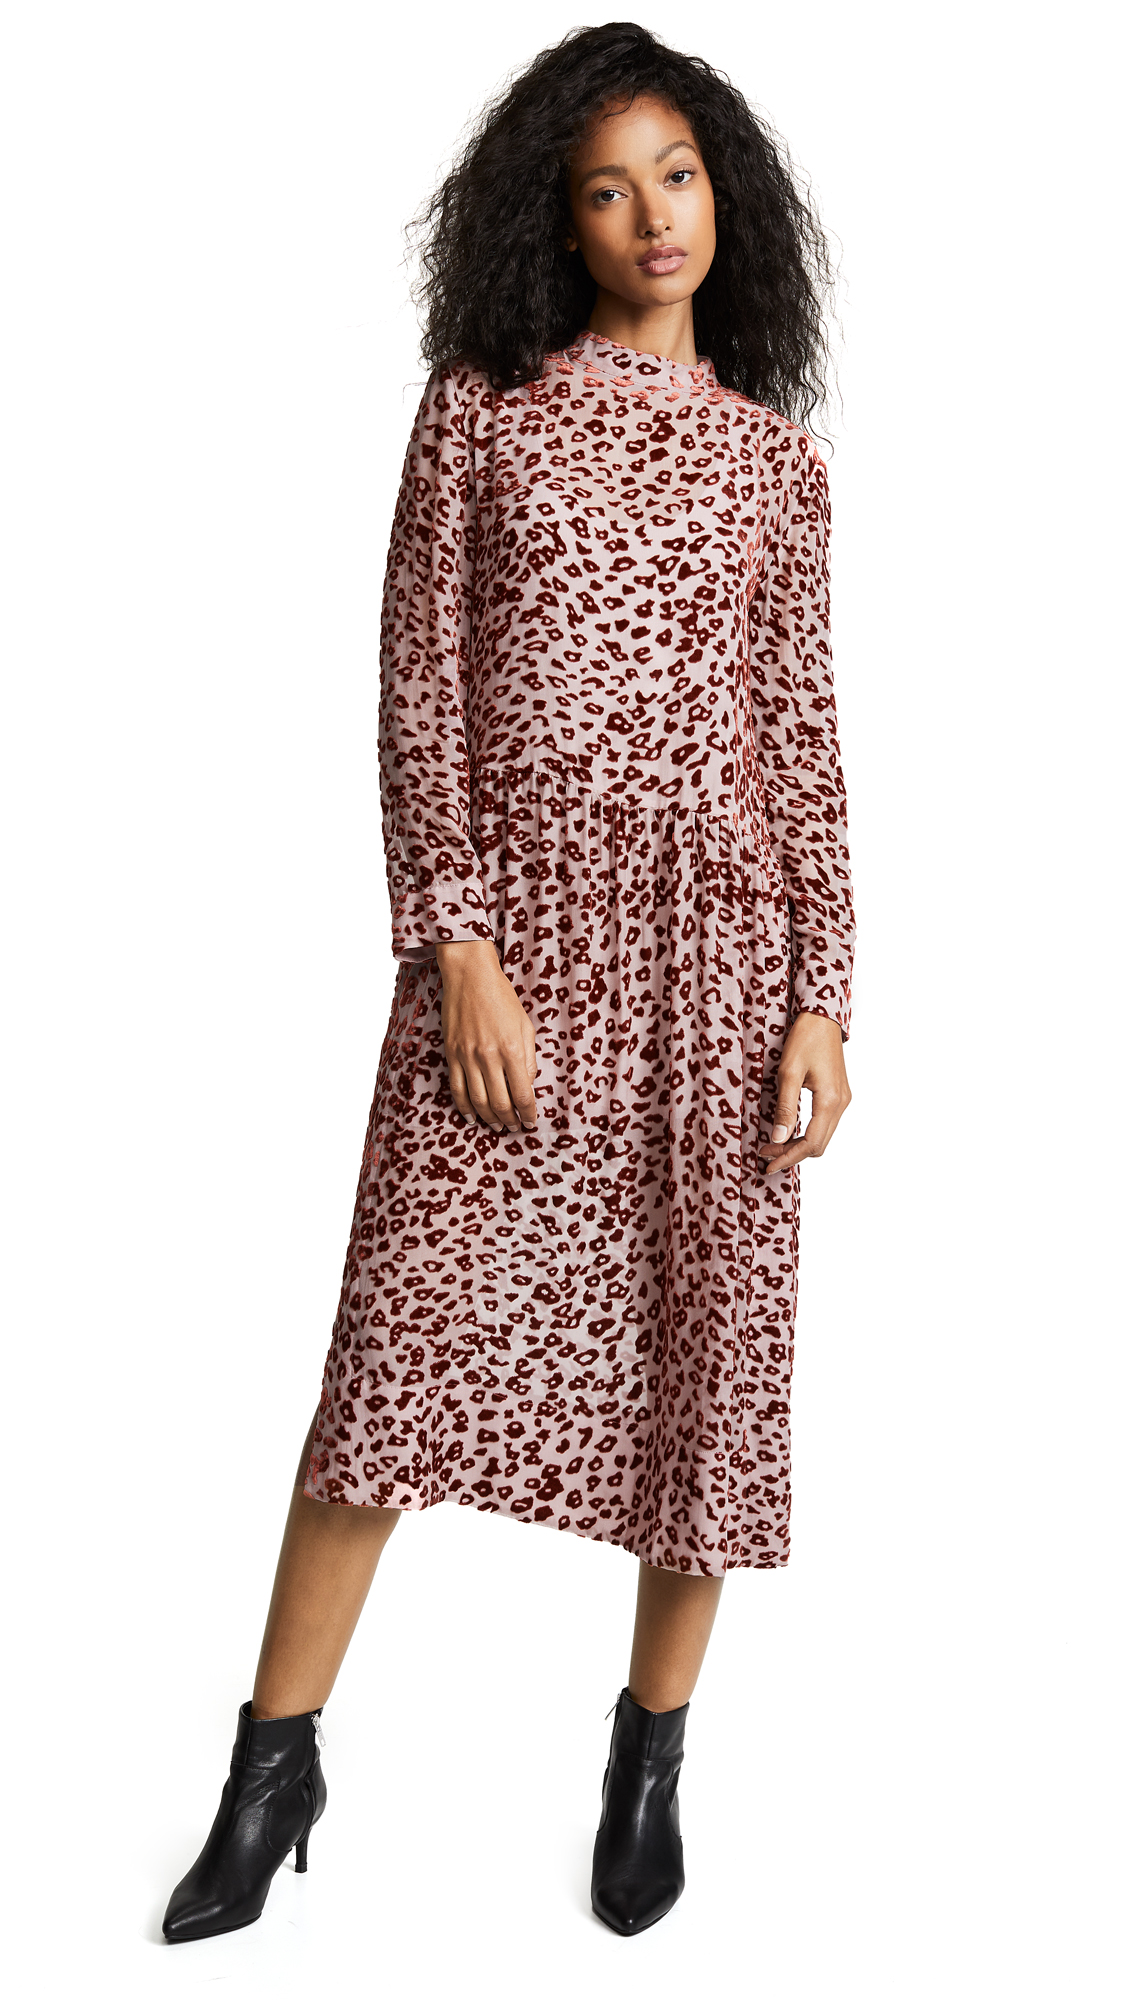 Rag & Bone Gia Dress - Pink/Rust